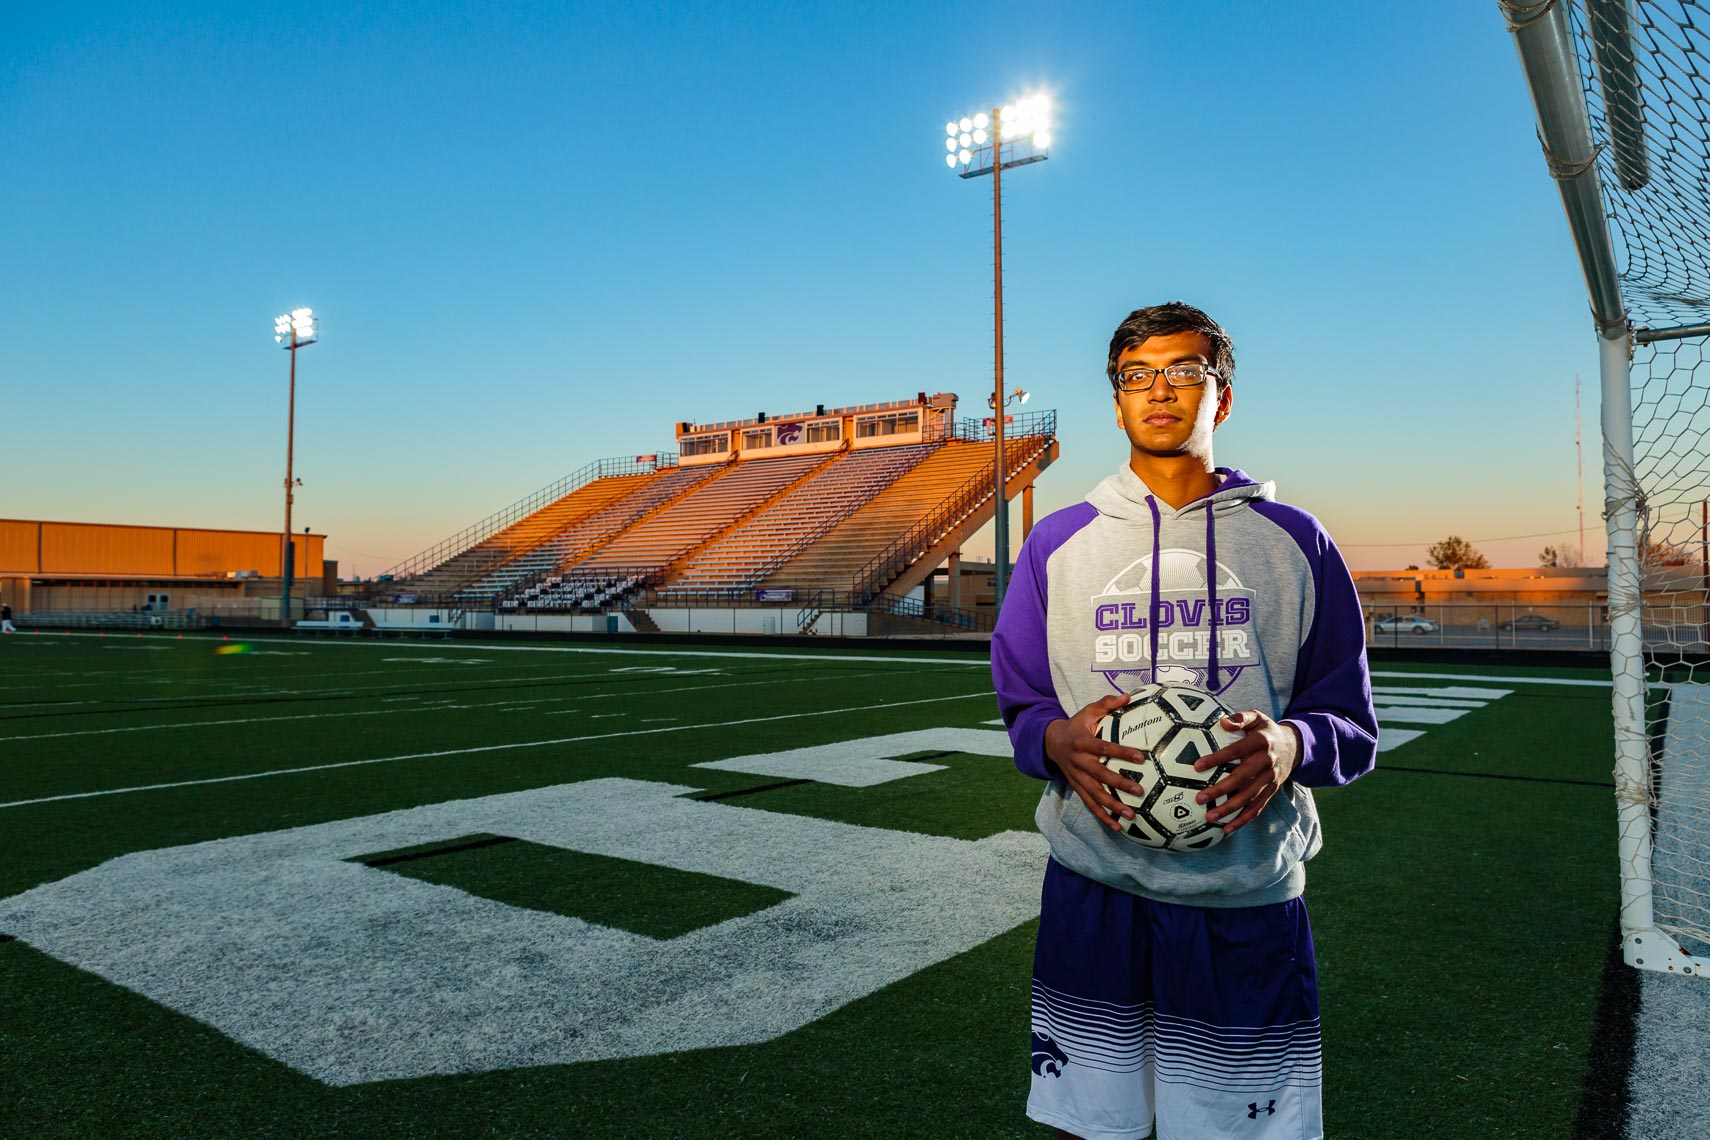 Environmental Portrait New Mexico Soccer Player | Michael DeYoung